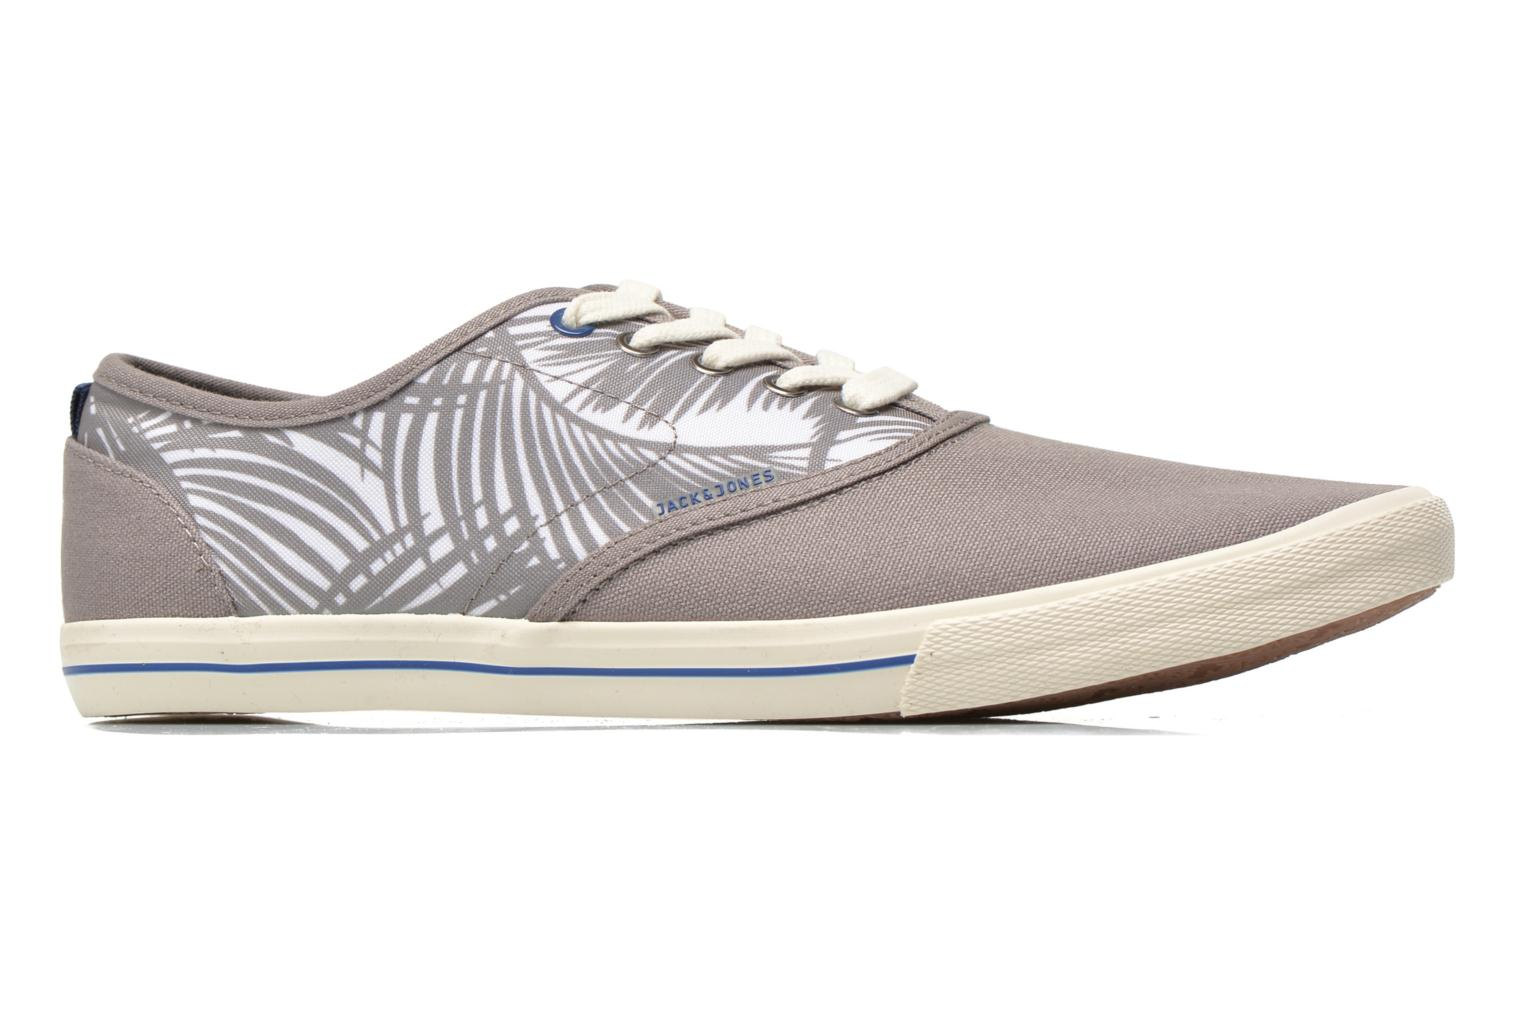 JJSpider Canvas Palm Print Frost grey